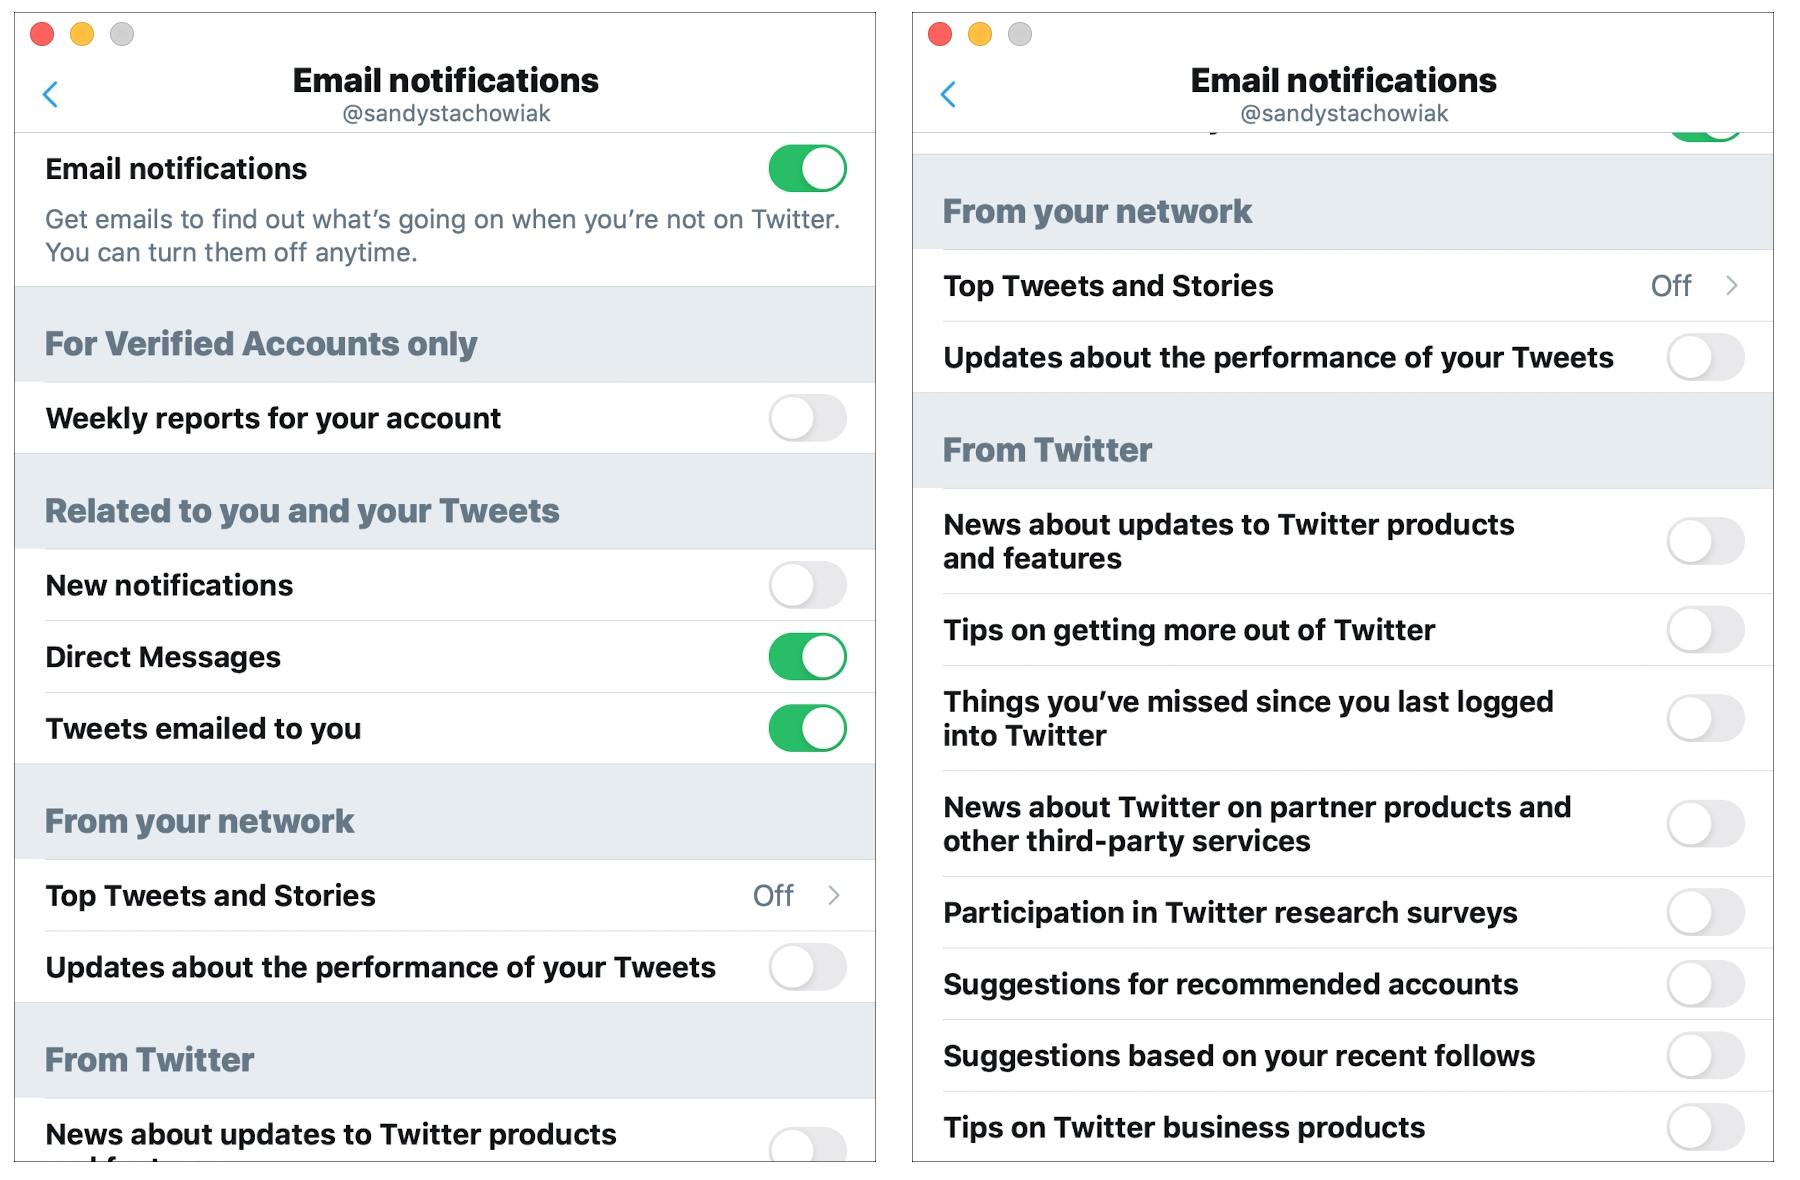 Twitter Email Notifications Mac